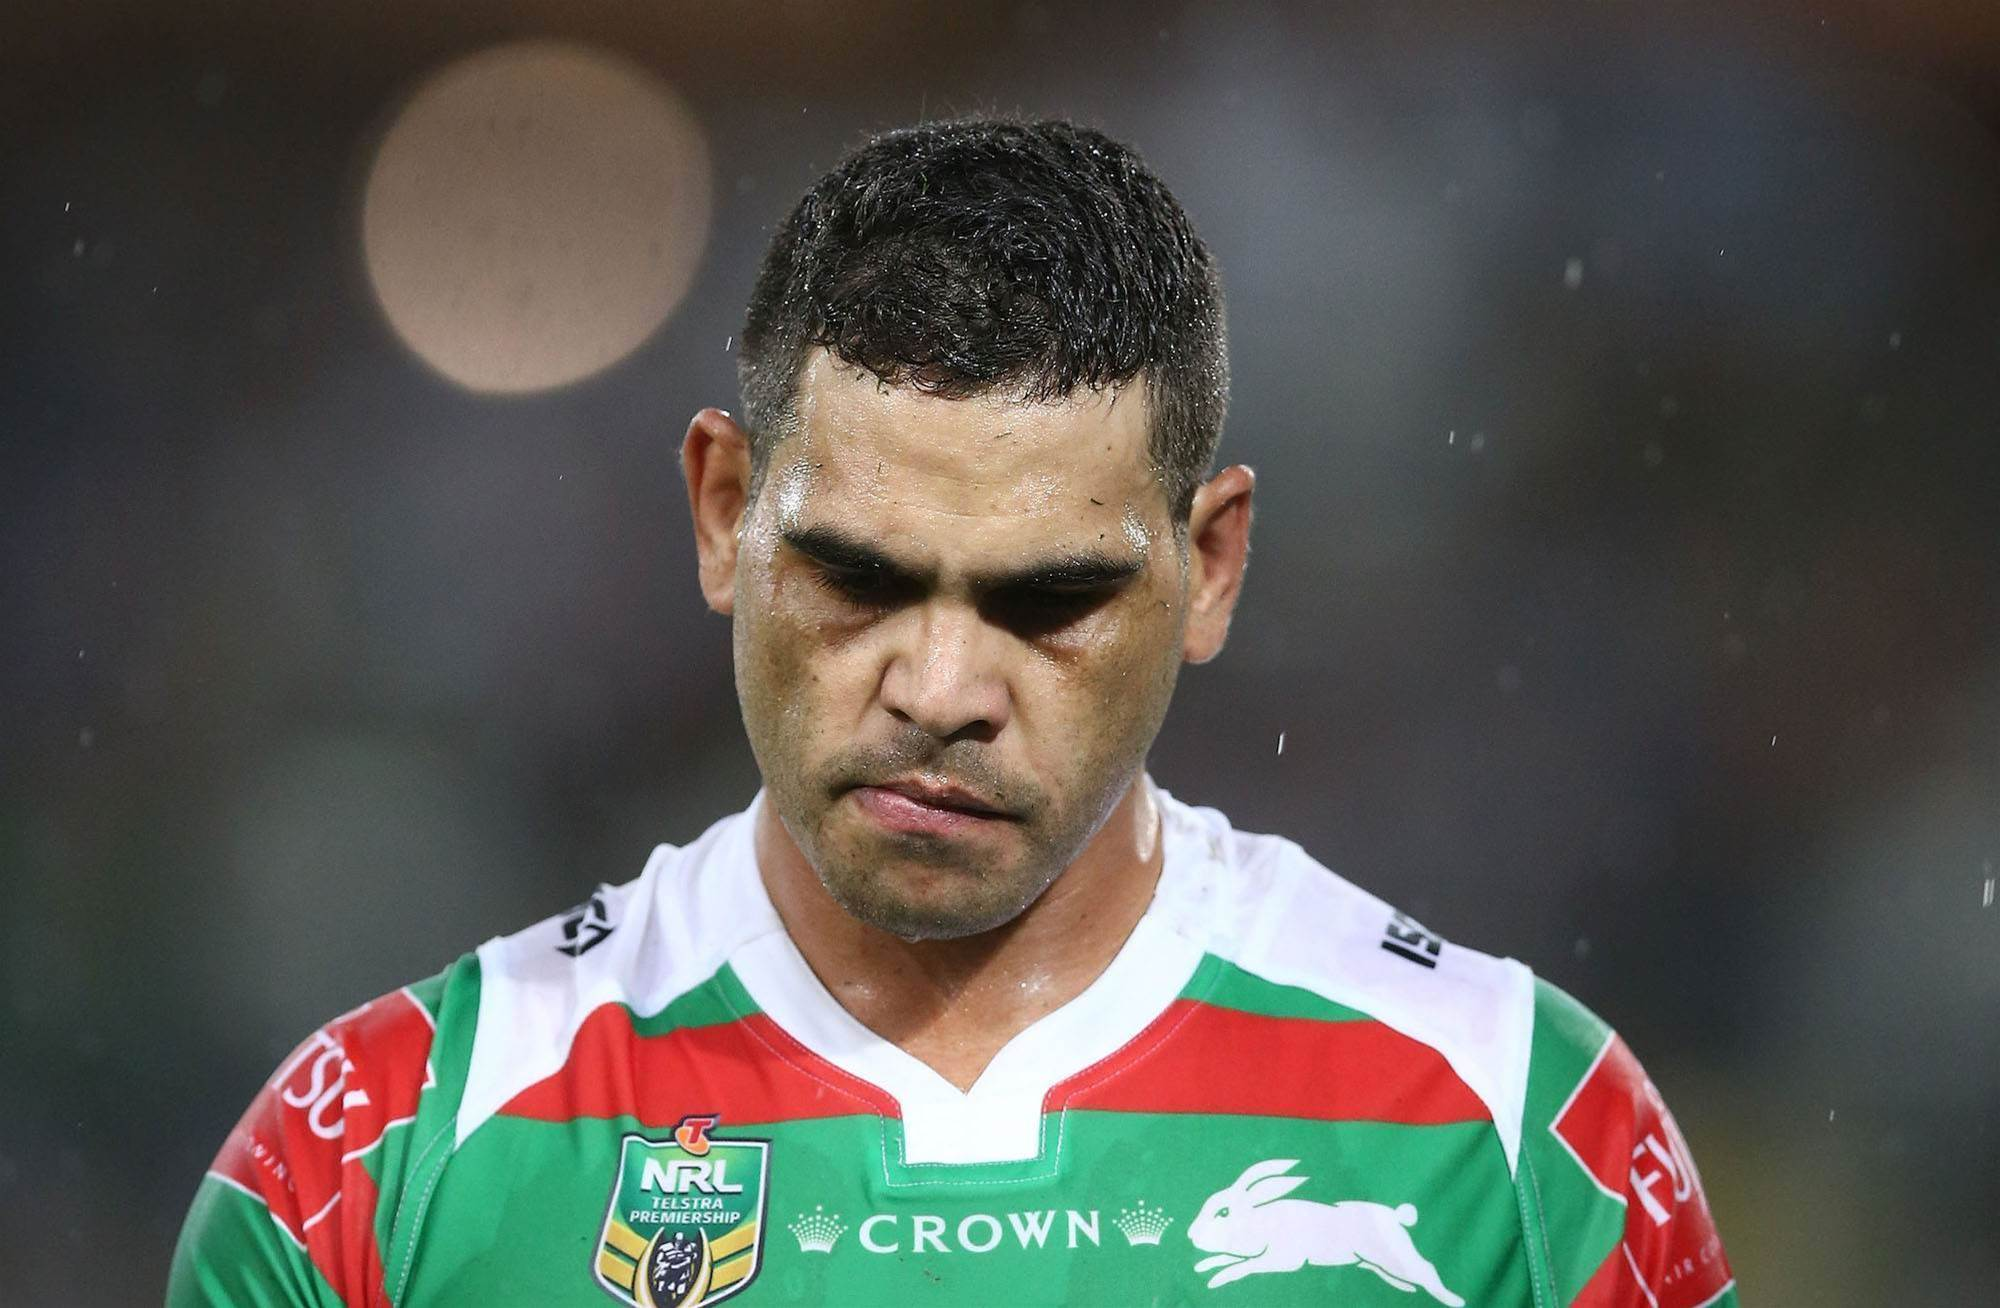 Inglis: 'It's not weak to speak'